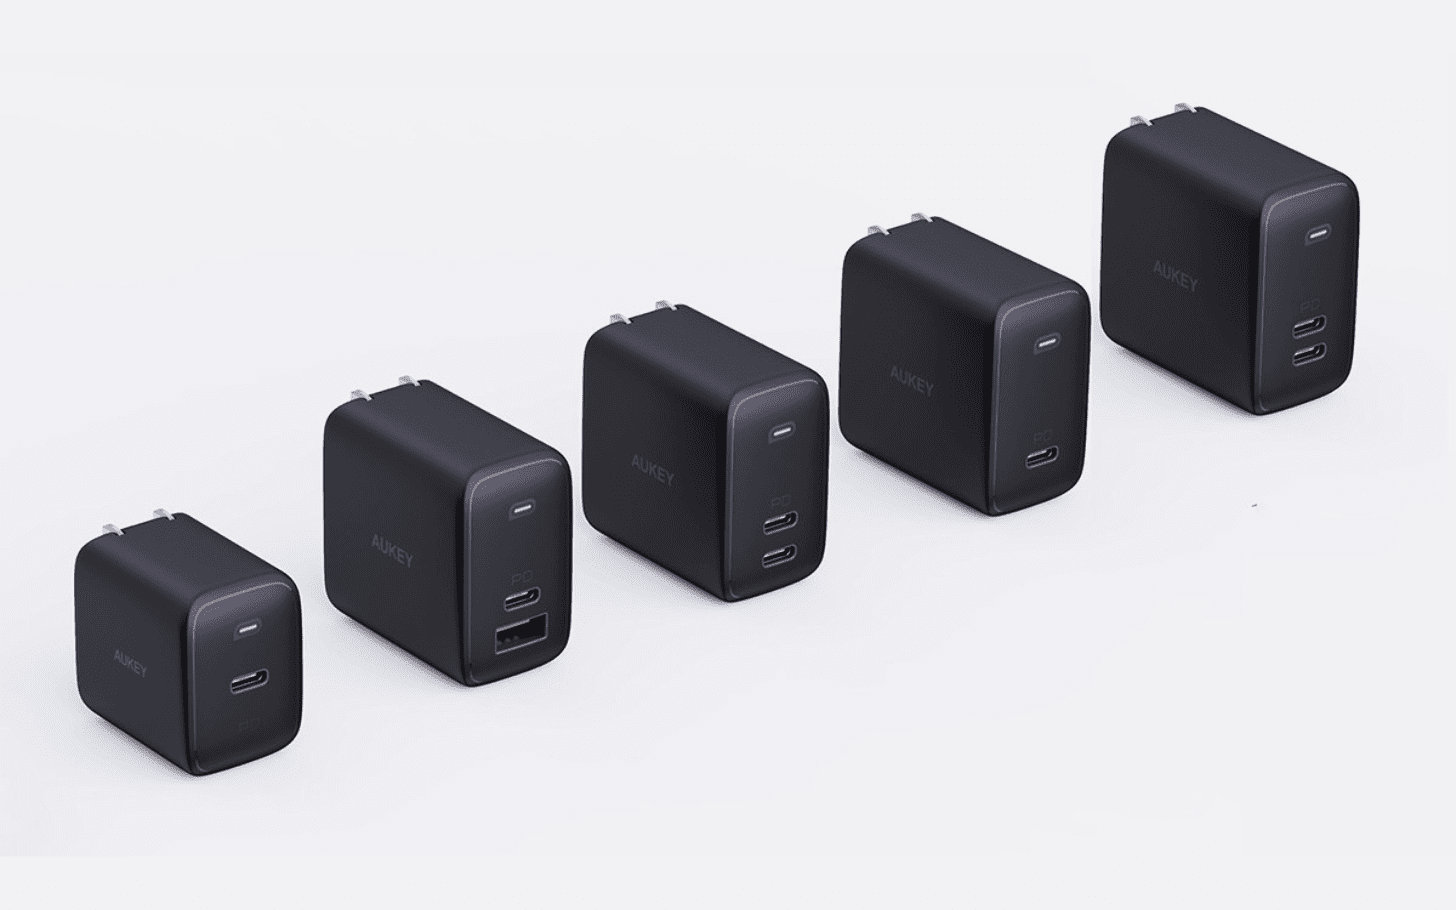 Aukey-Omnia-Series-Chargers